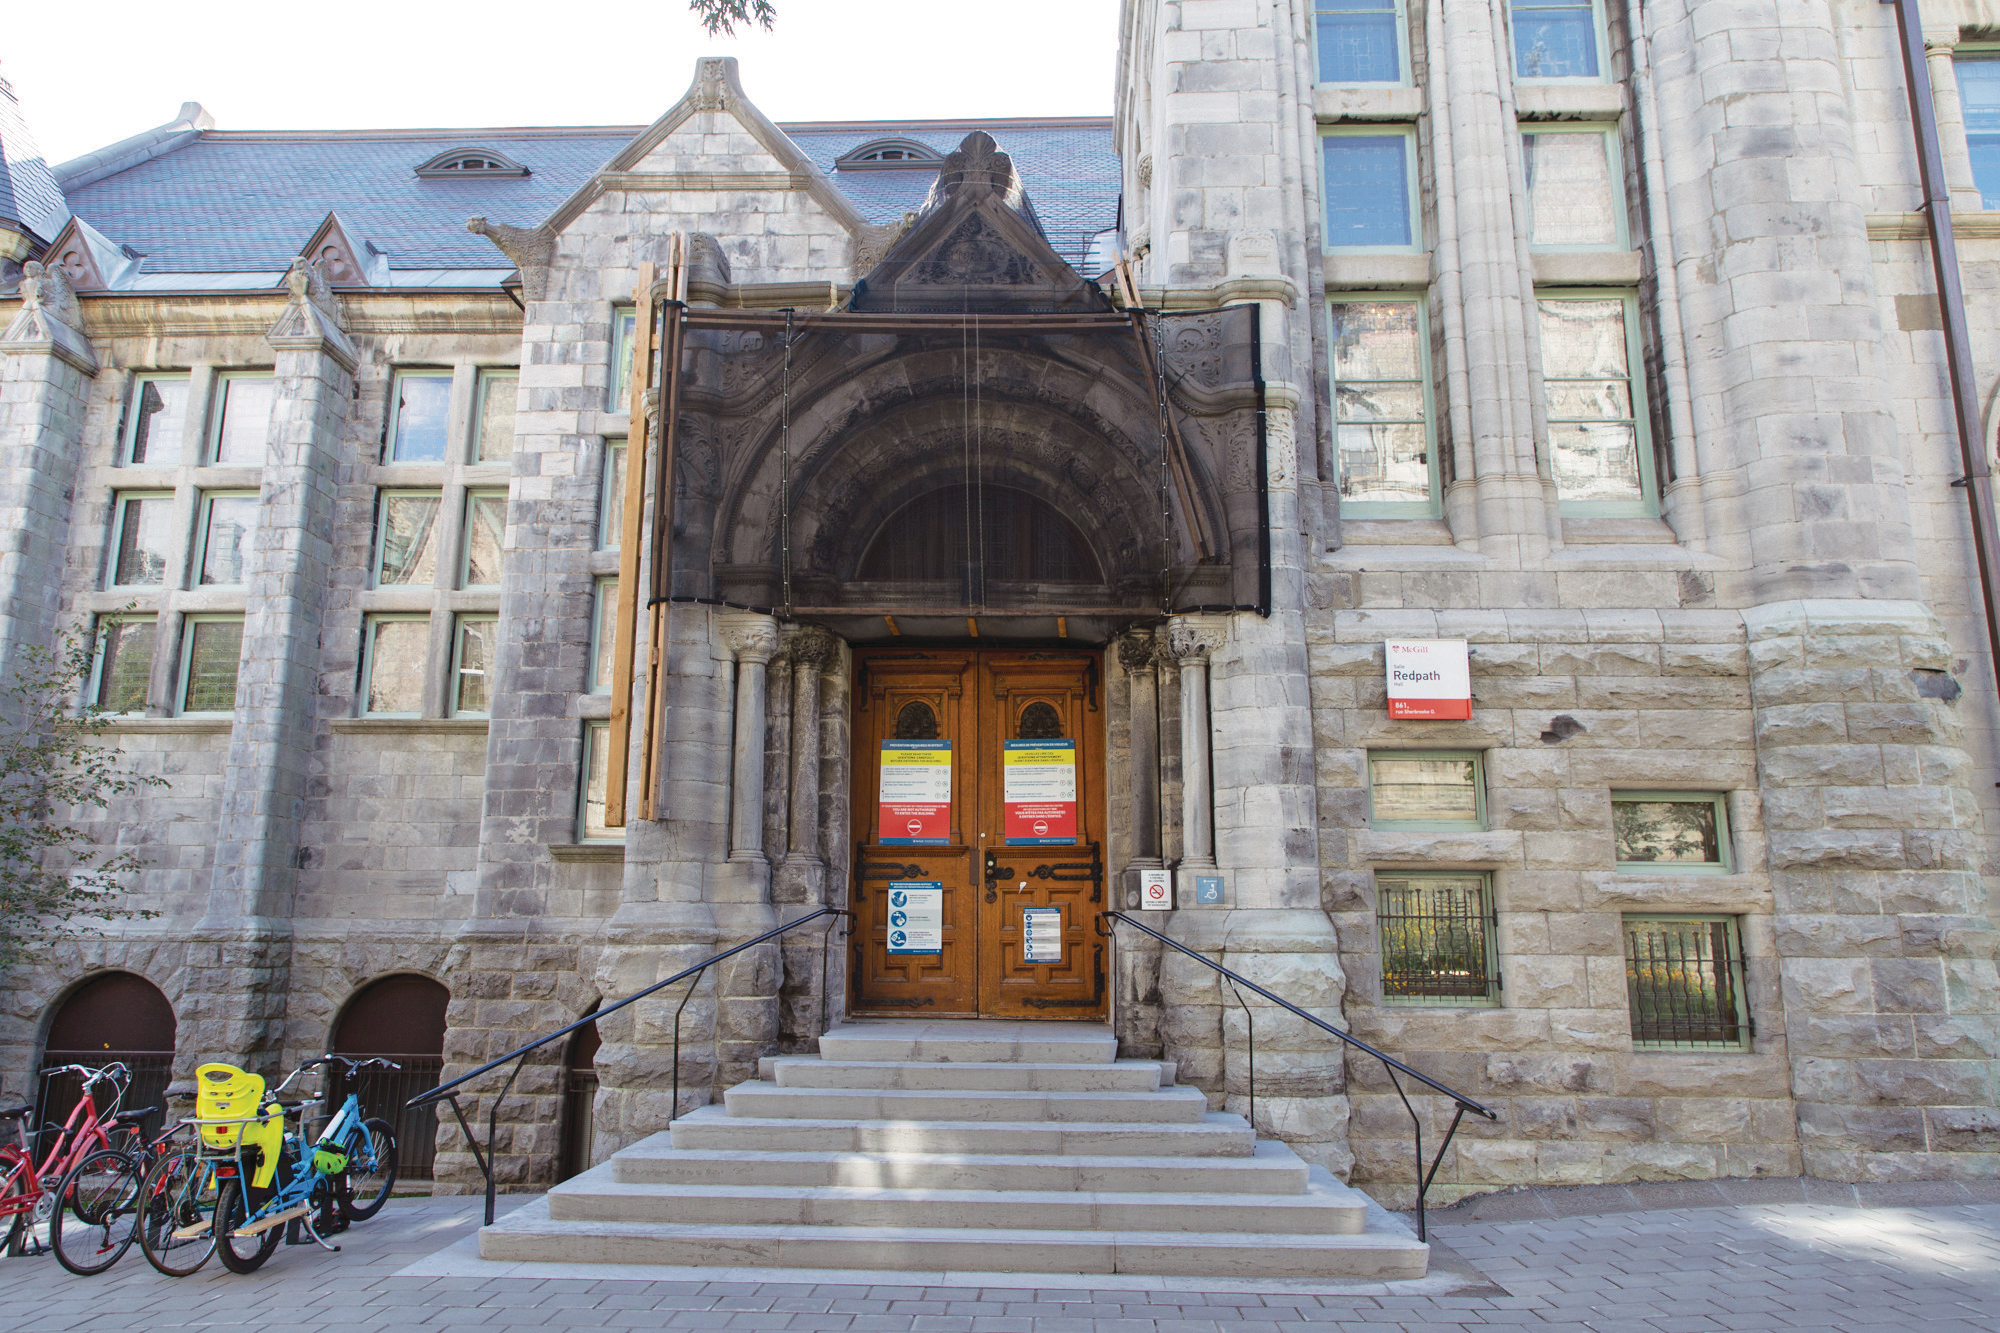 Photograph of McGill University's construction on campus. (Photograph by Stacy Lee)